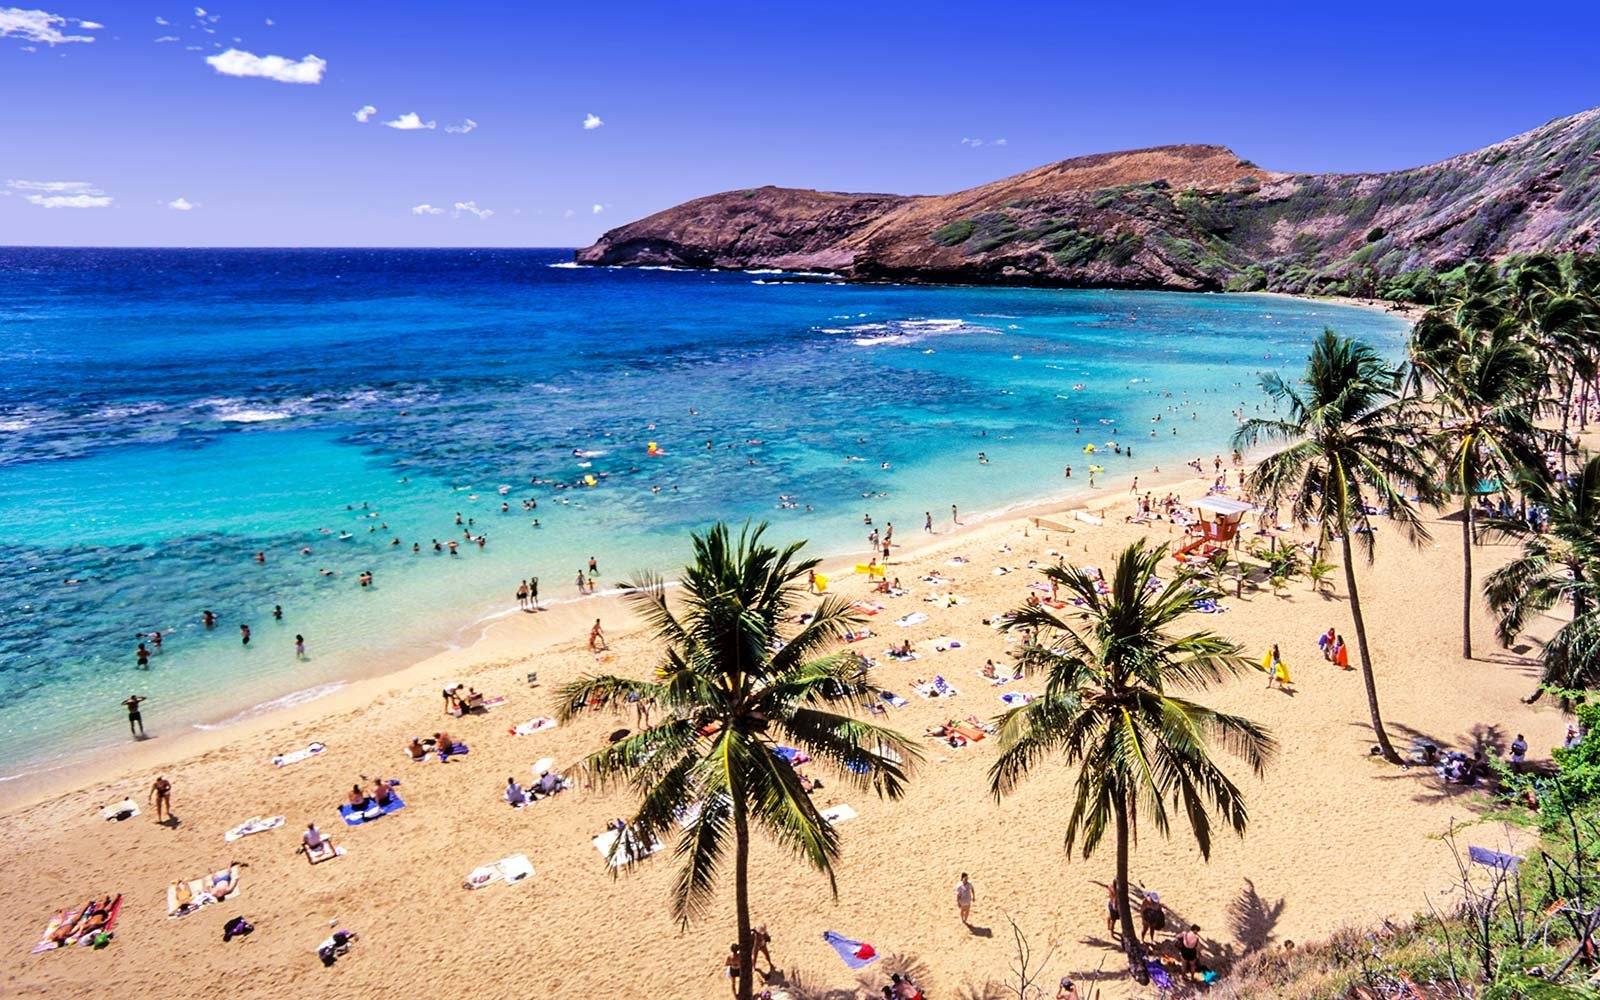 USA, Hawaii, Oahu, Hanauma Bay Nature Preserve, a Nature Preserve and a Marine Life Conservation District inside a volcanic crater